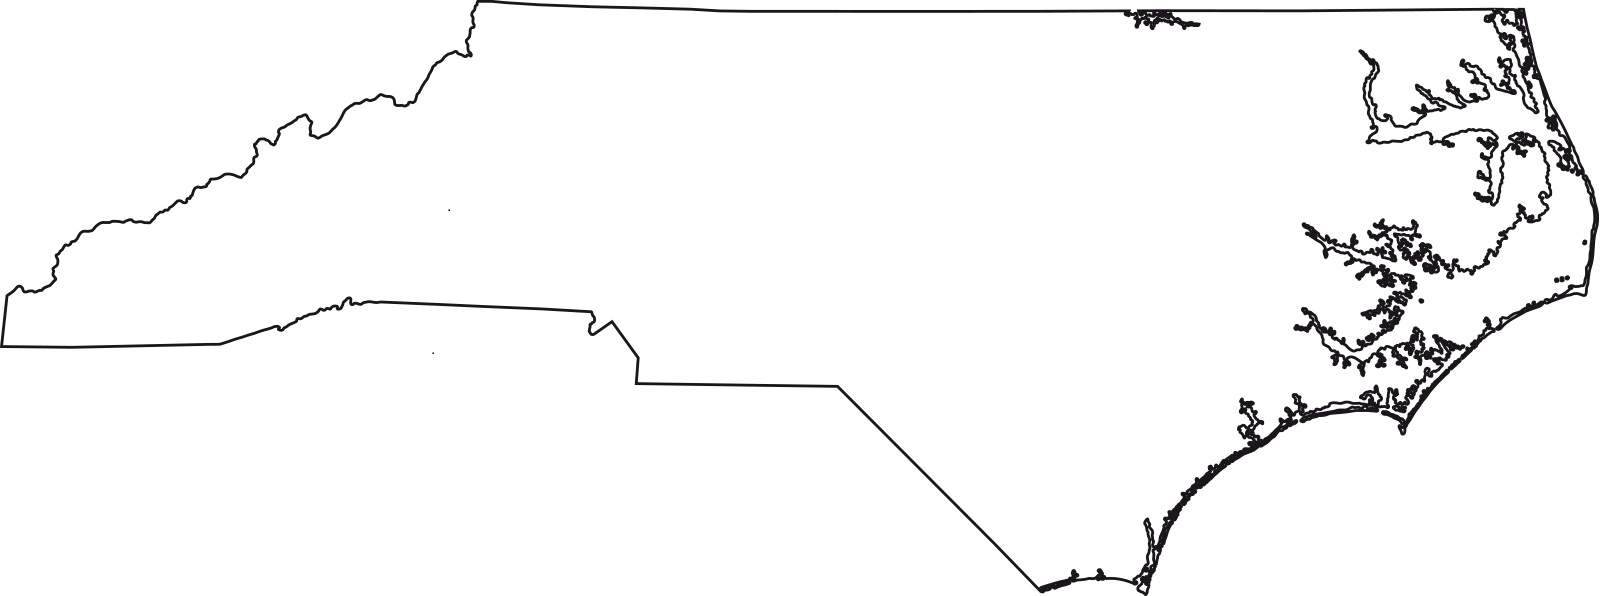 North Carolina blank outline Map | Large Printable High Resolution and Standard Map